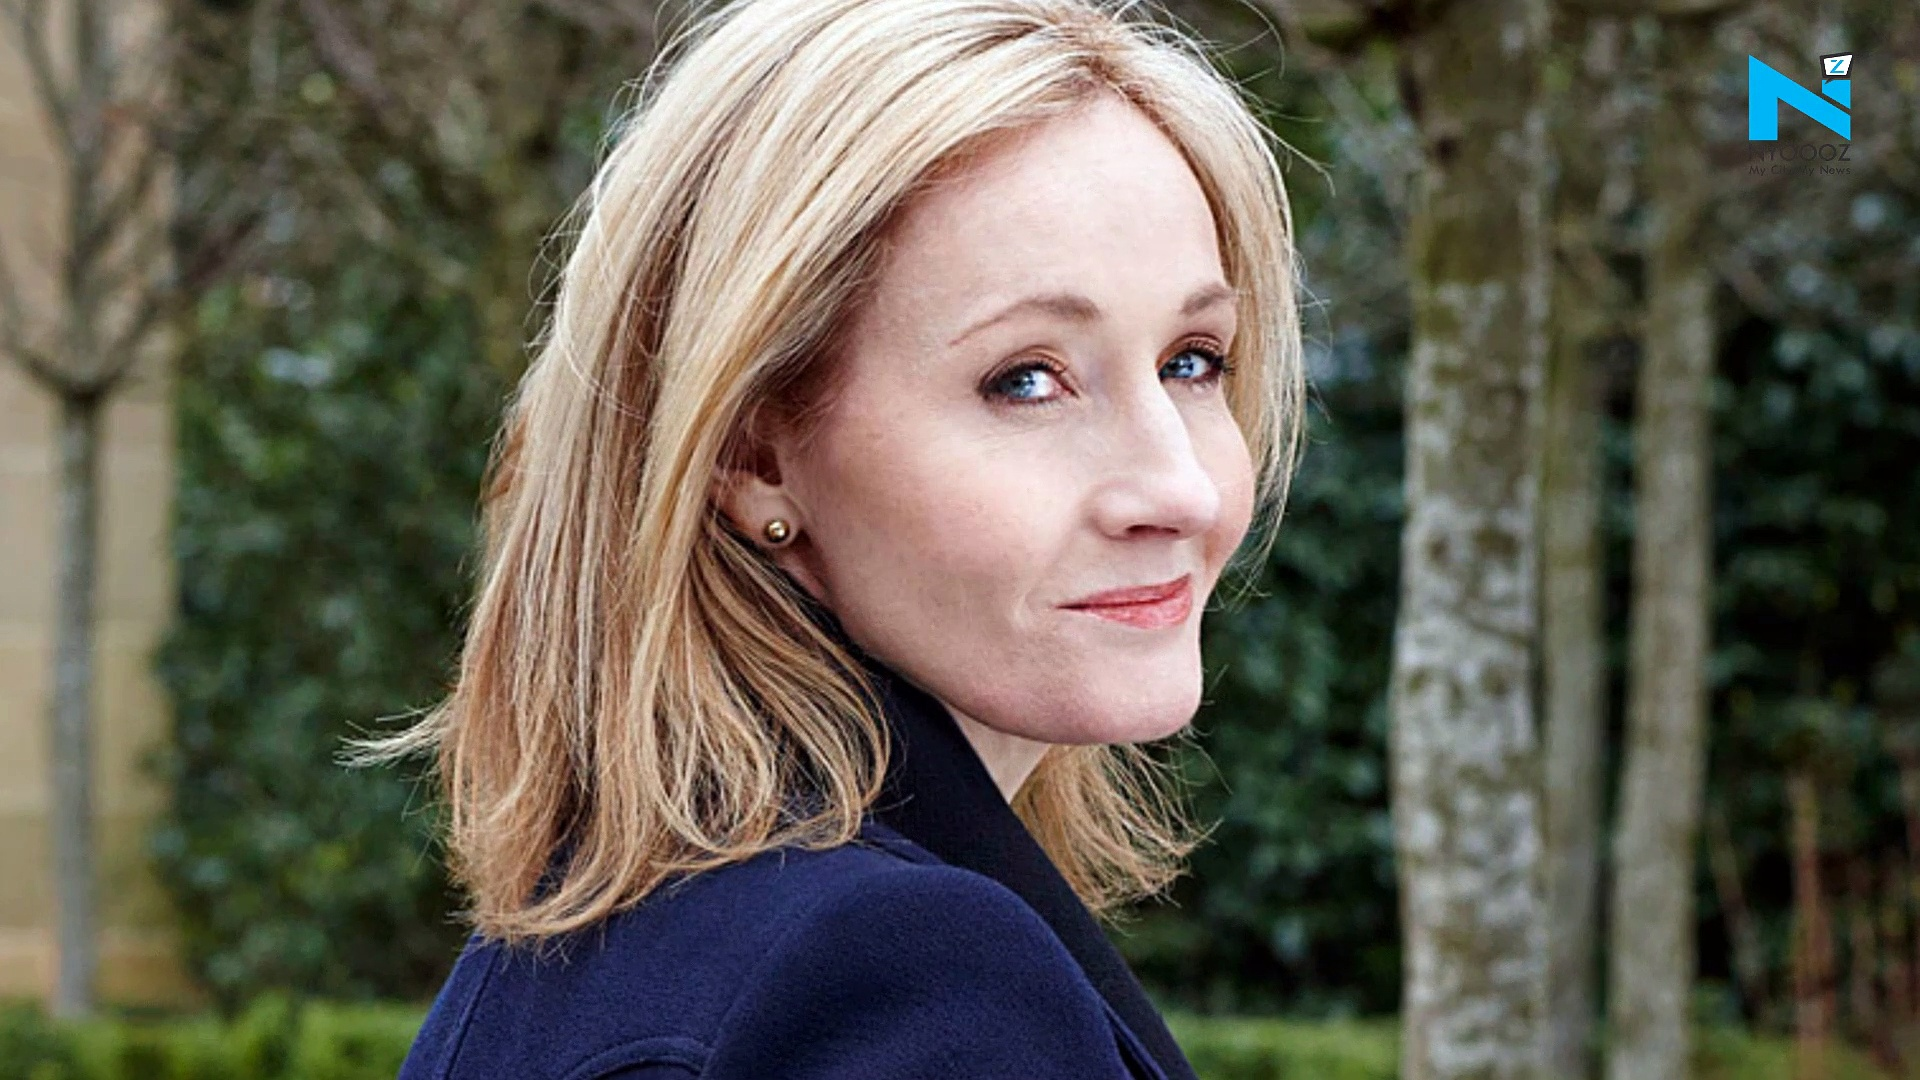 JK Rowling reveals how she fully recovered from Coronavirus symptoms